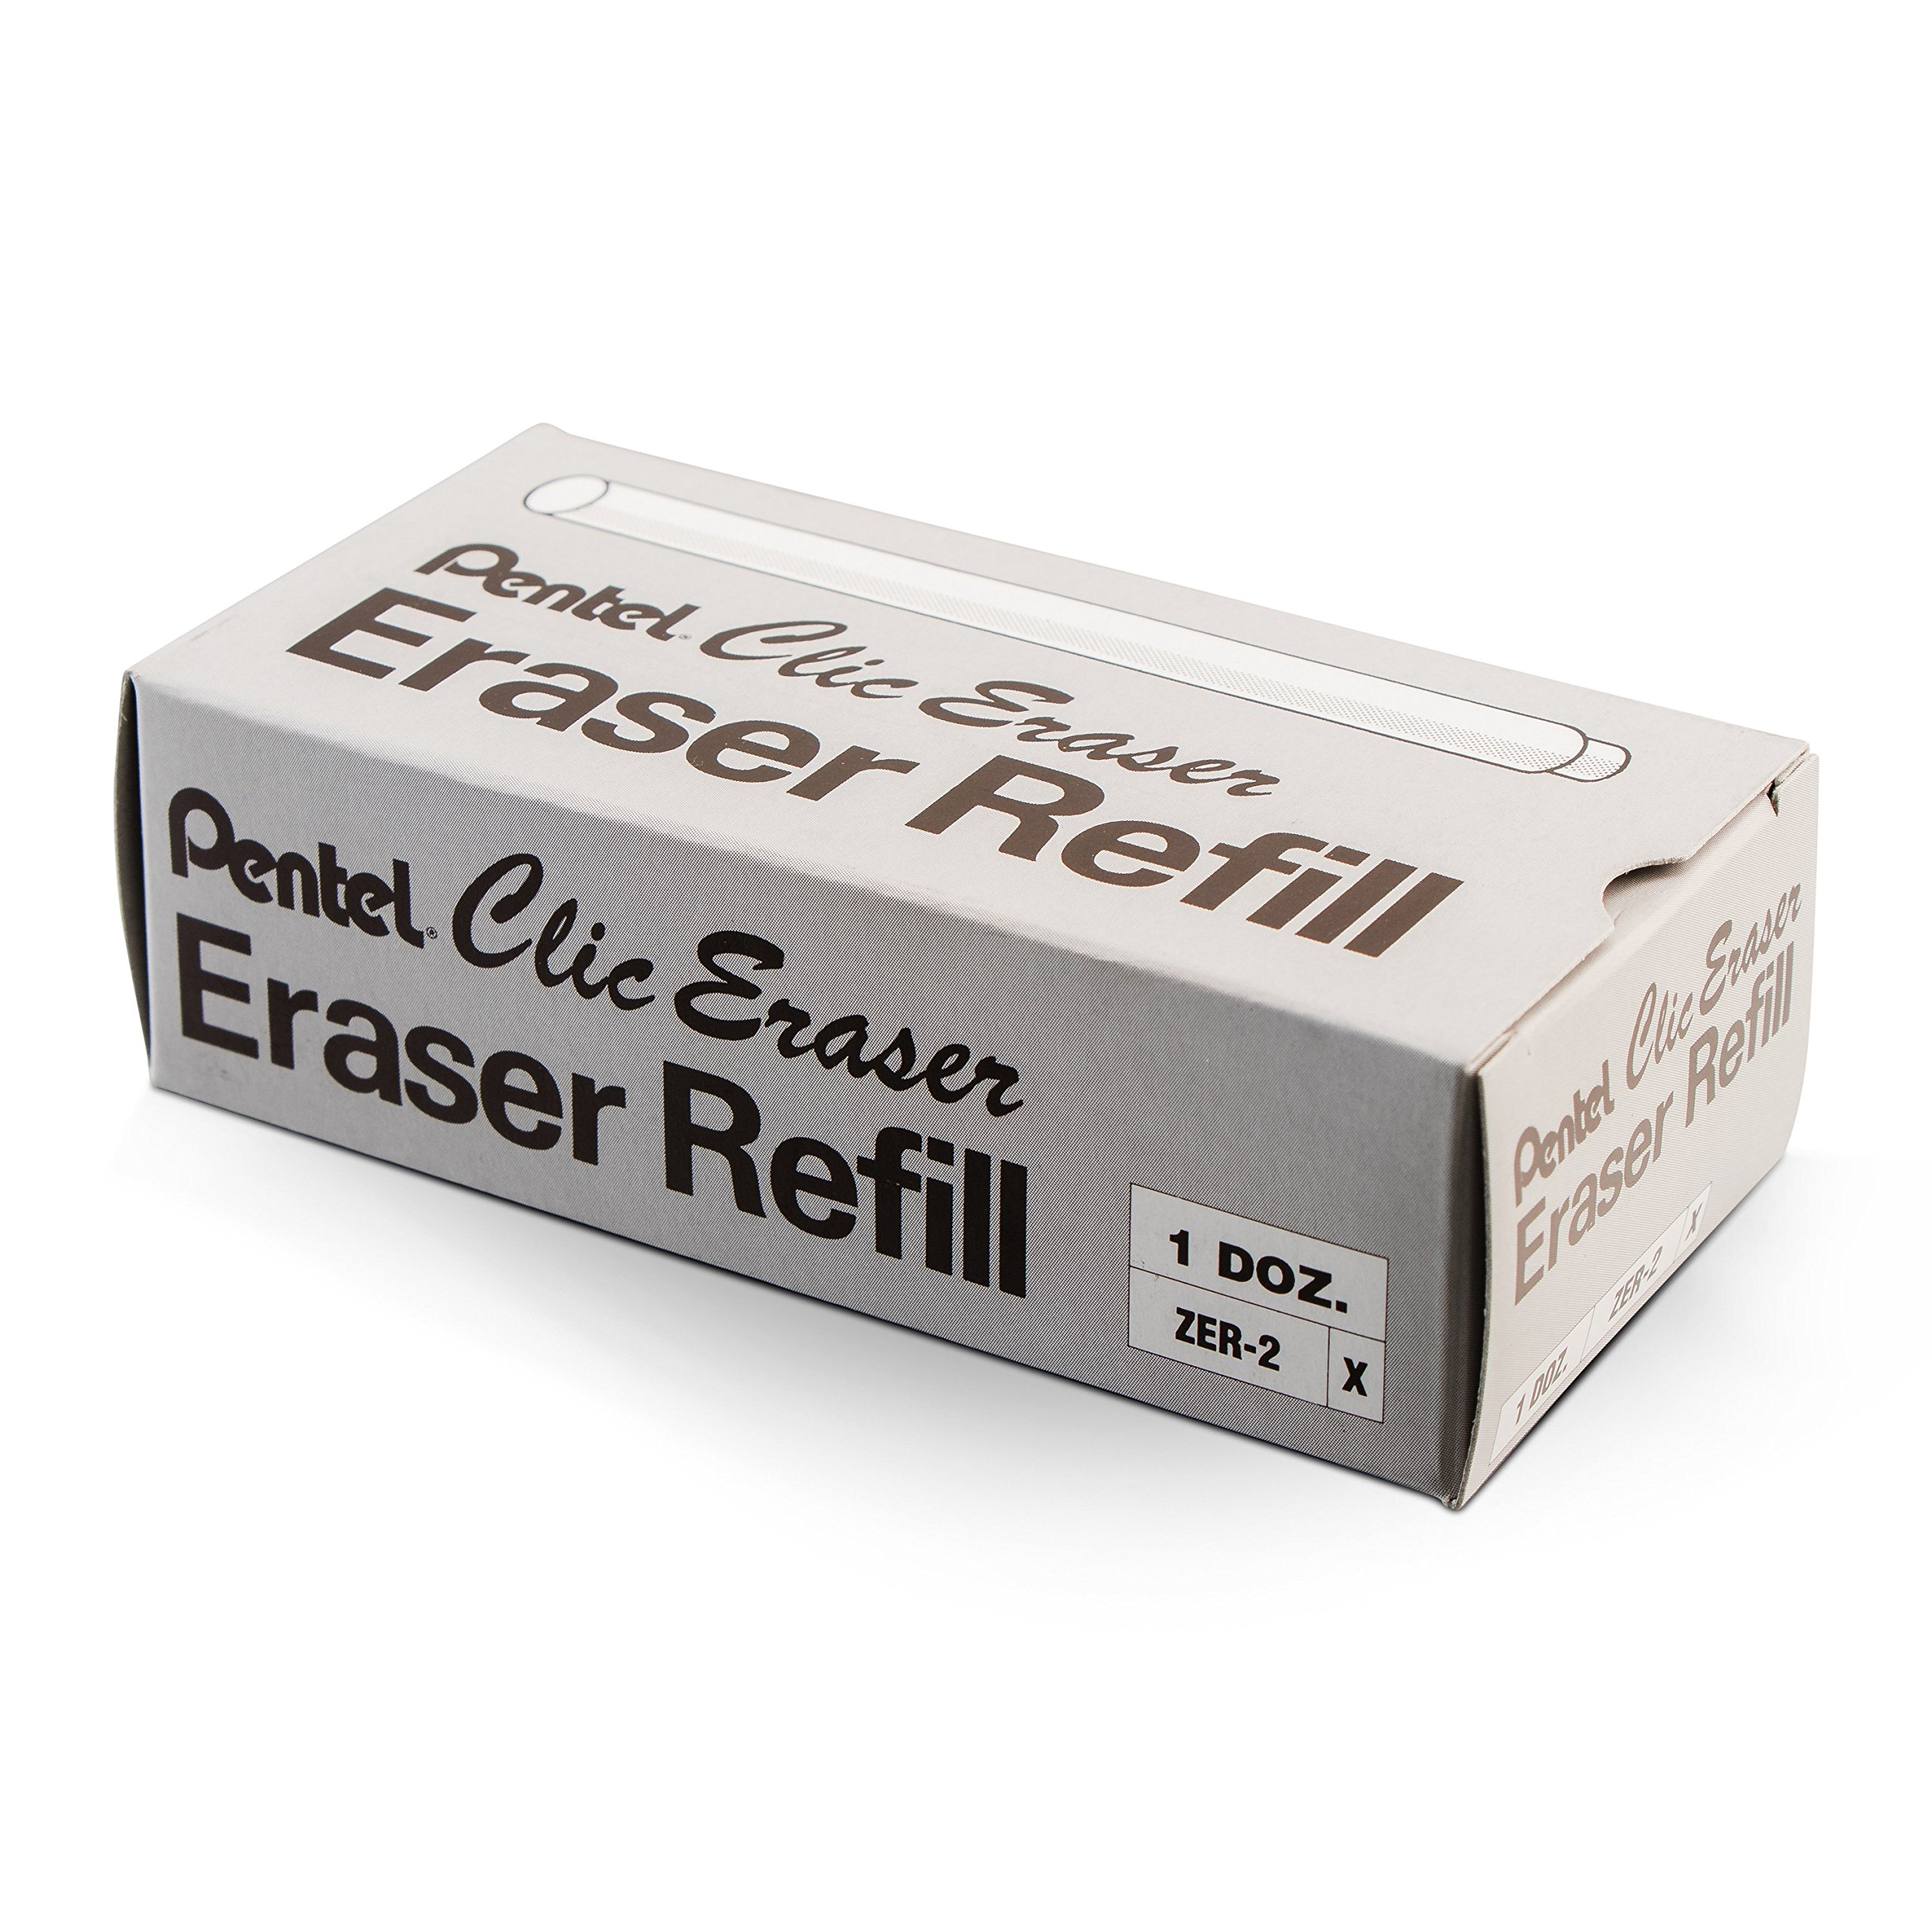 Pentel Refill Erasers for Clic Eraser, Contains 24 Erasers (ZER-2) by Pentel (Image #3)